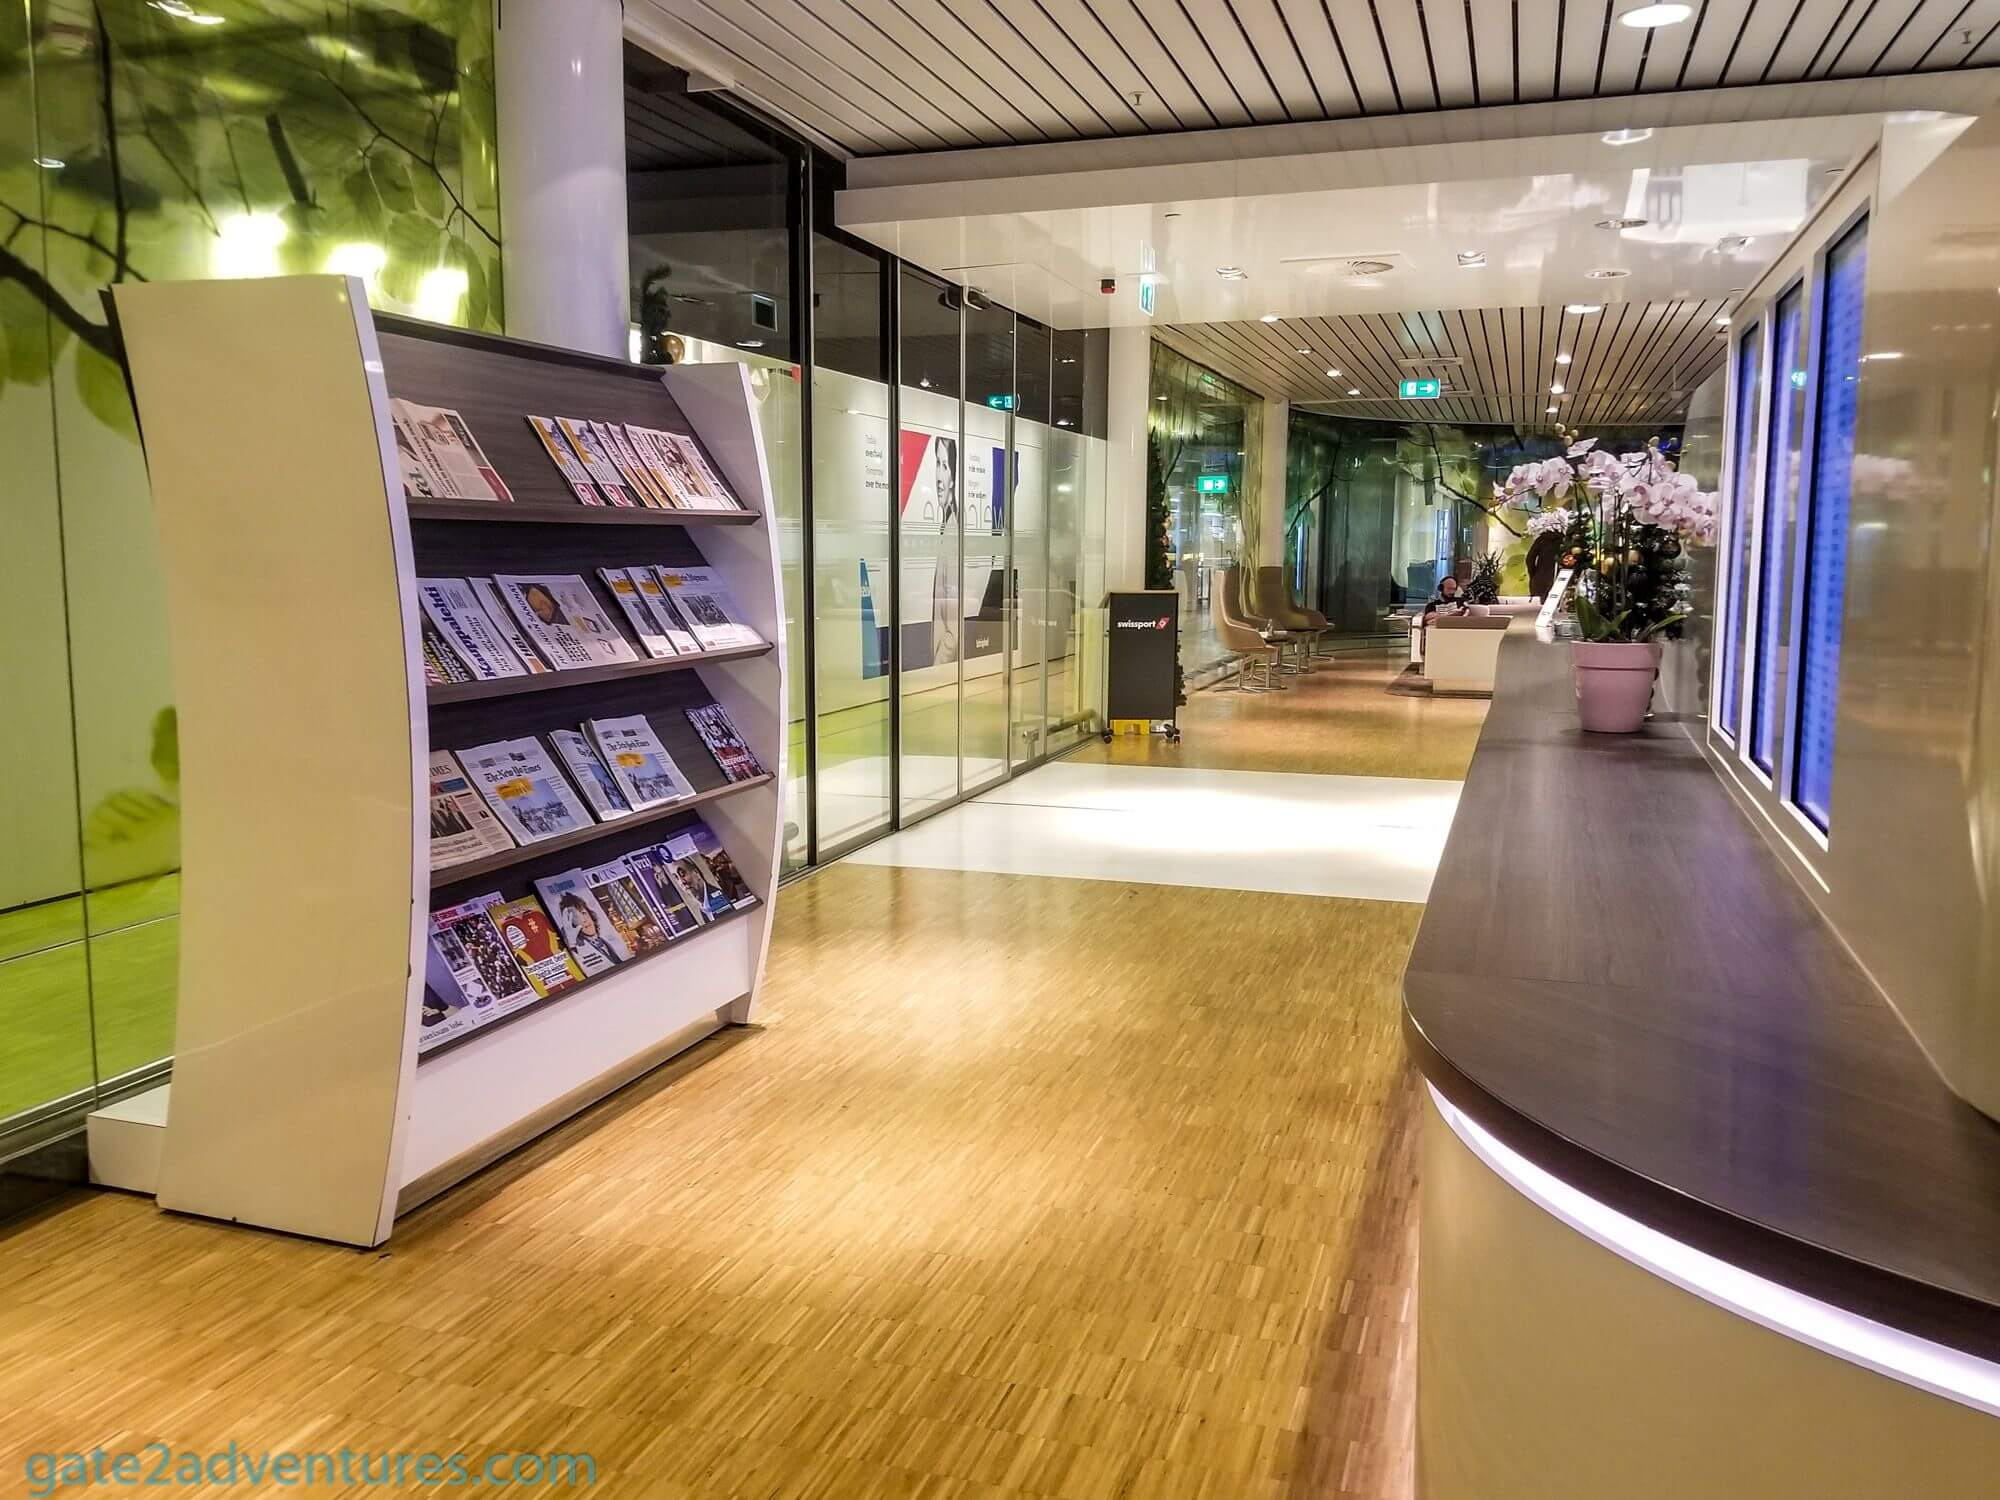 Aspire Lounge (26) Amsterdam Schiphol Airport (AMS)